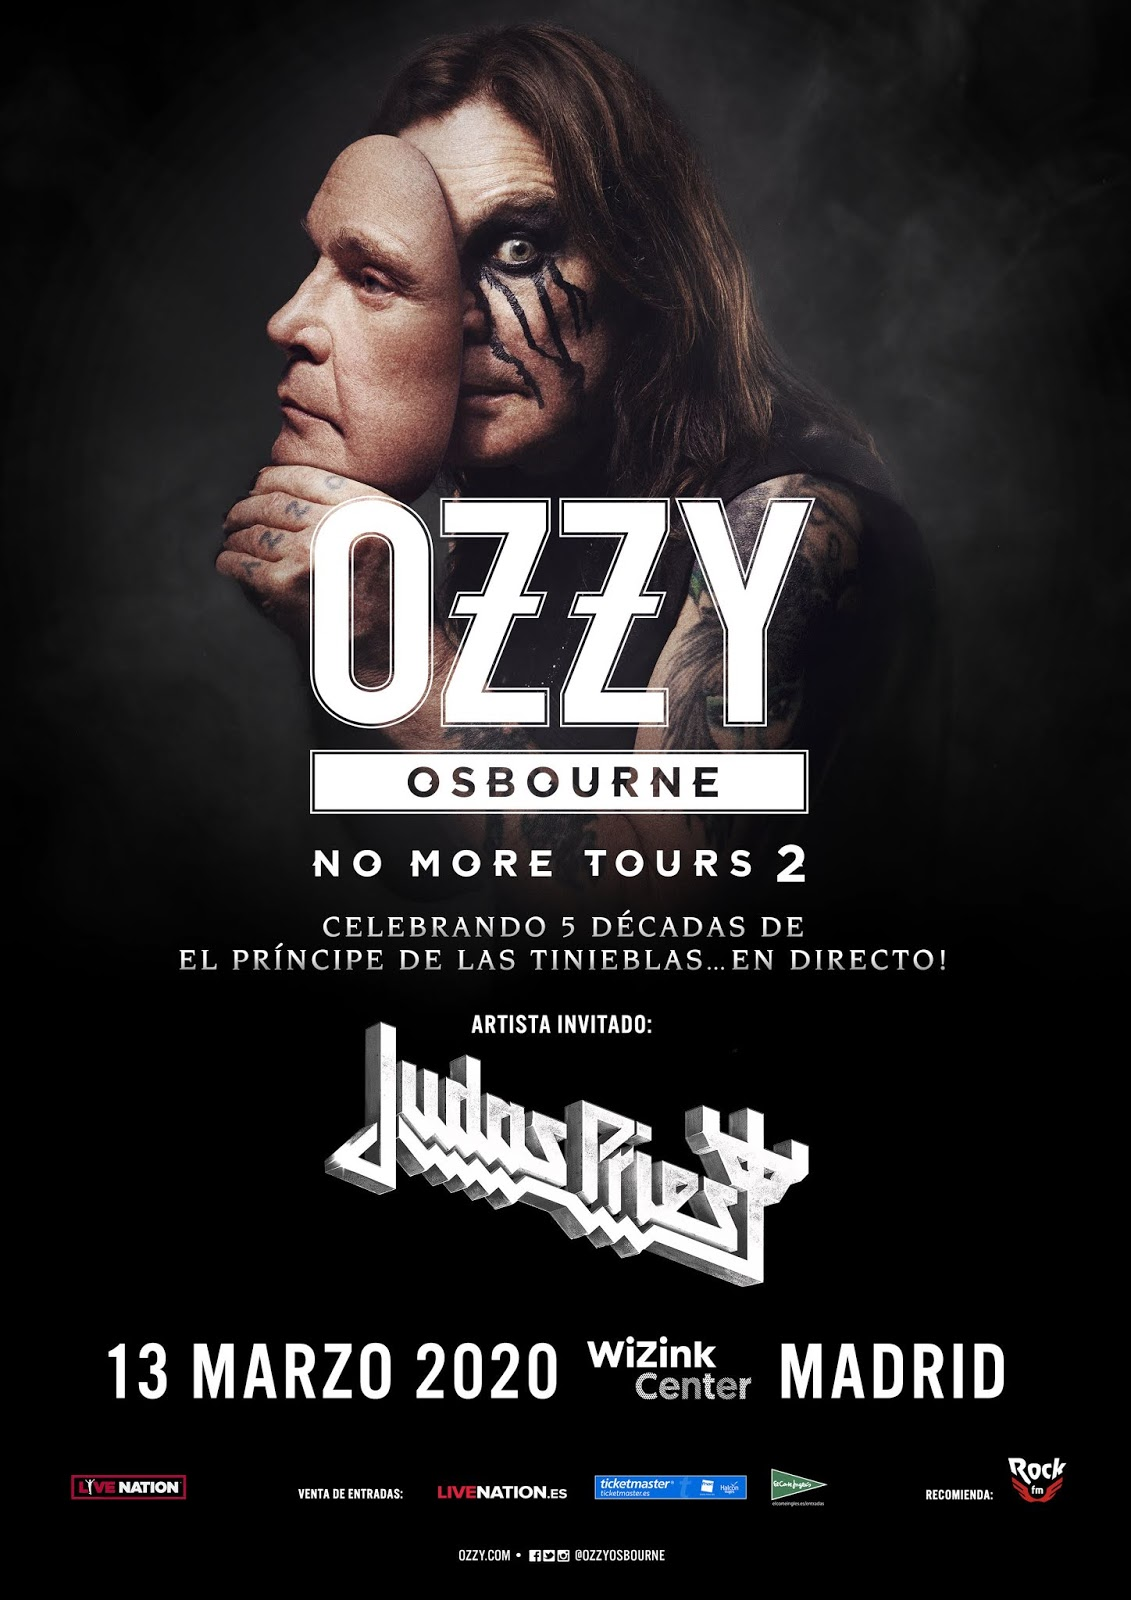 Ozzy Osbourne 'No more Tours 2'